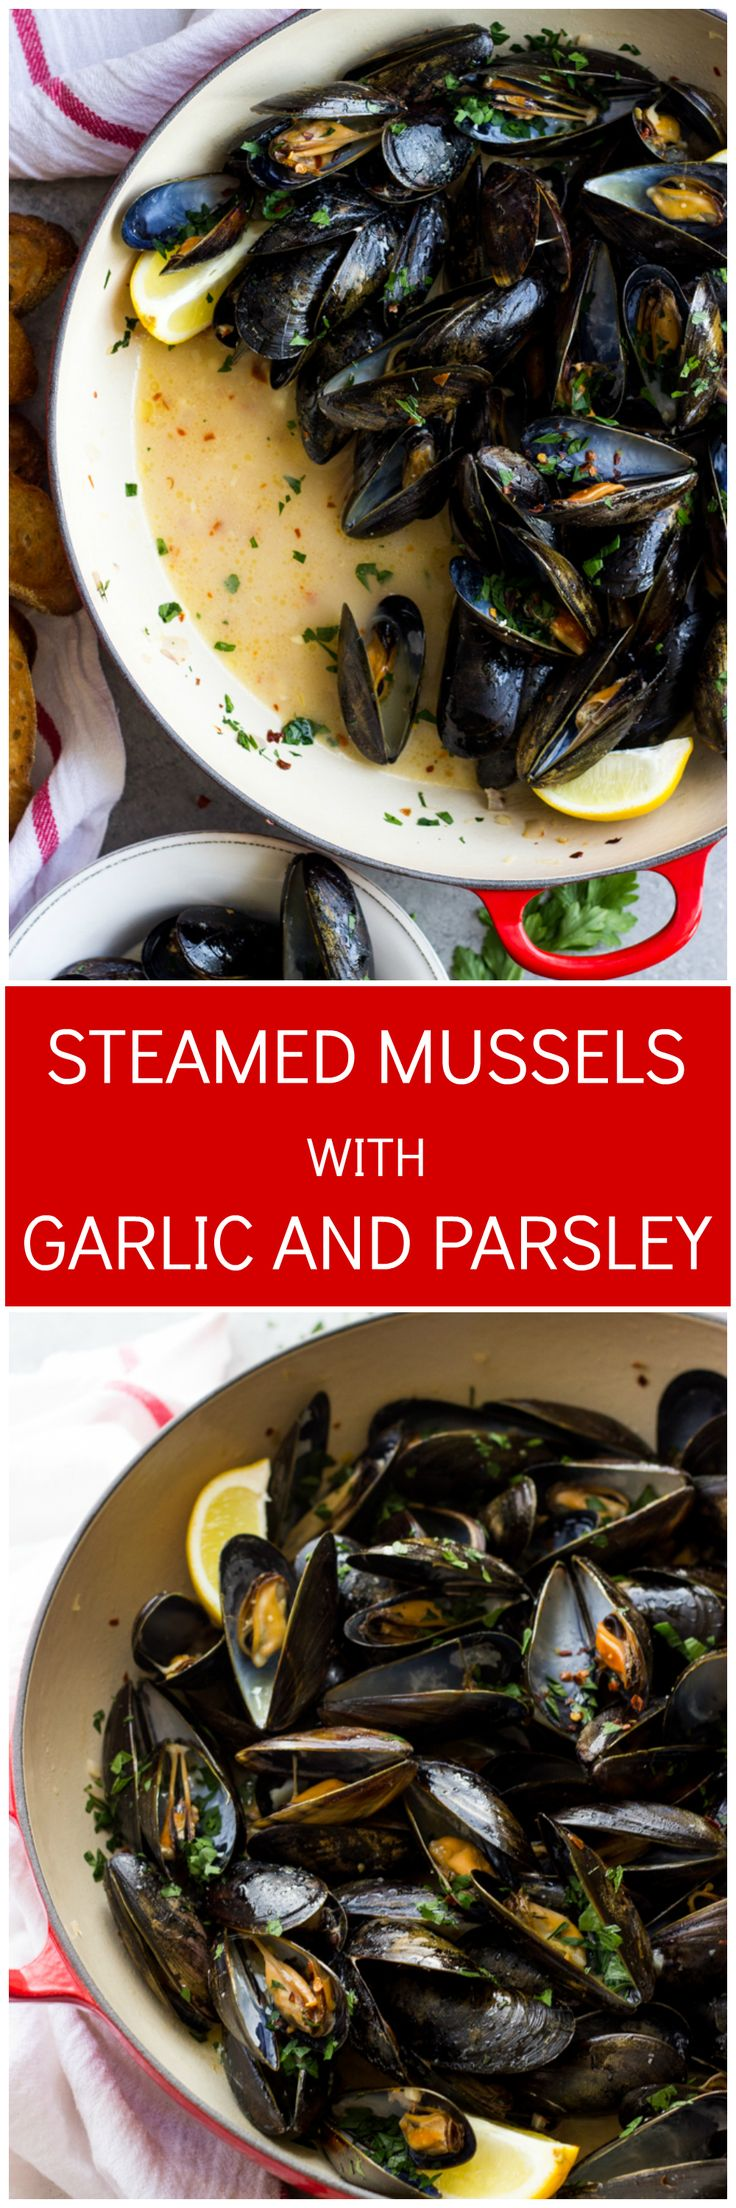 Steamed Mussels with Garlic and Parsley - only 8 ingredients to make the BEST tasting steamed mussels! | littlebroken.com @littlebroken (Seafood Recipes Mussels)